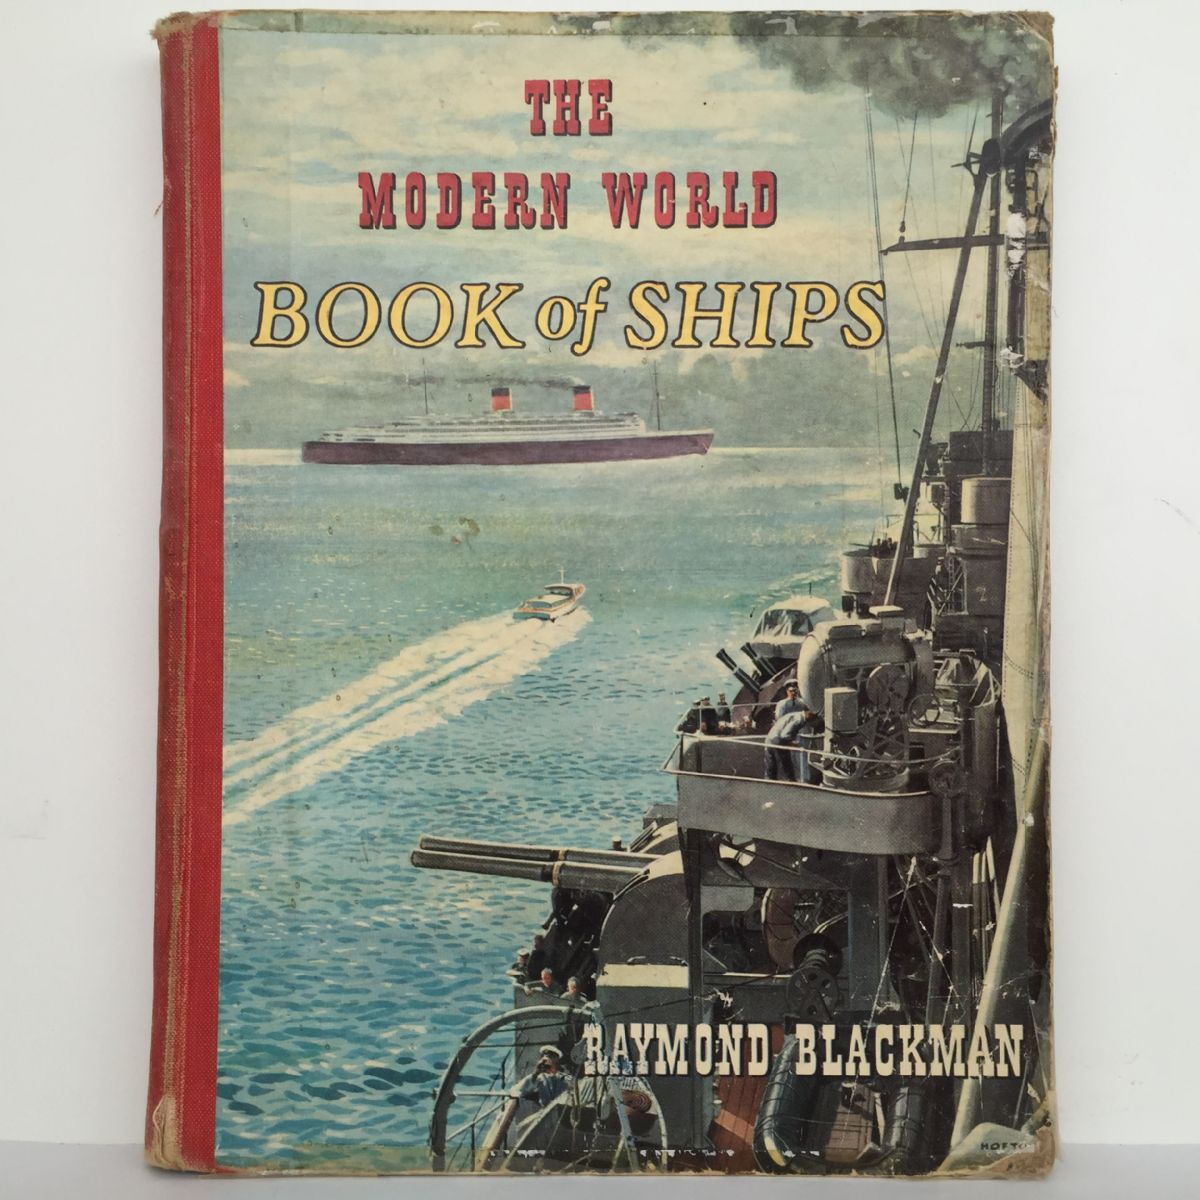 The Modern World: Book of Ships